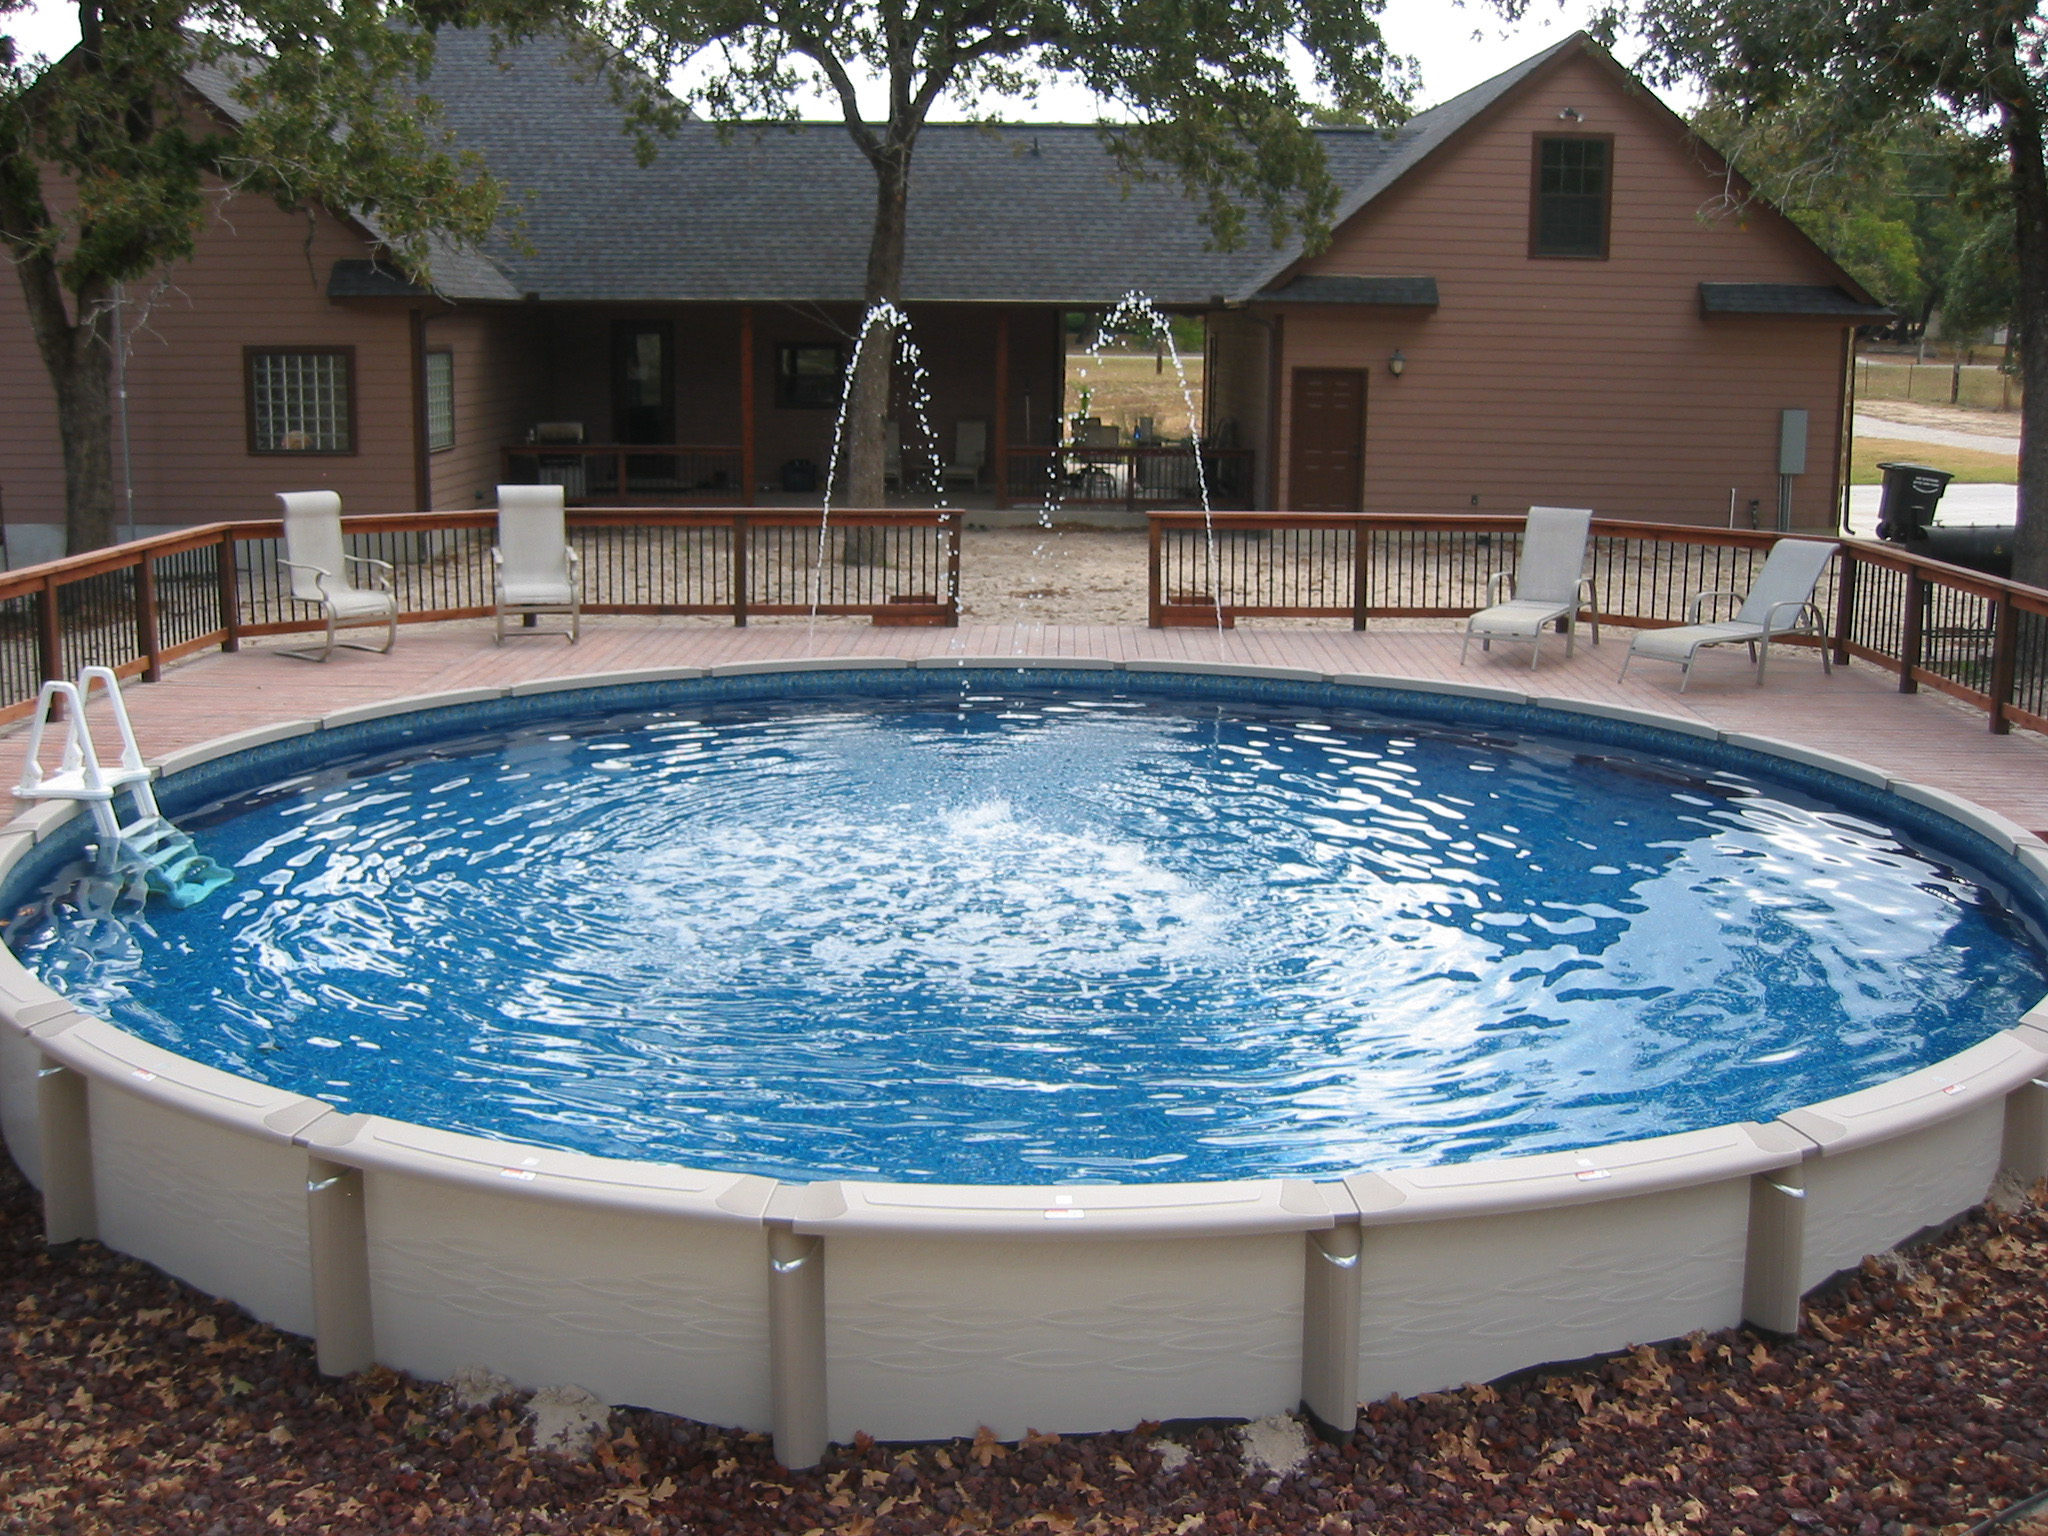 Best above ground swimming pools design on vine for Ground swimming pools